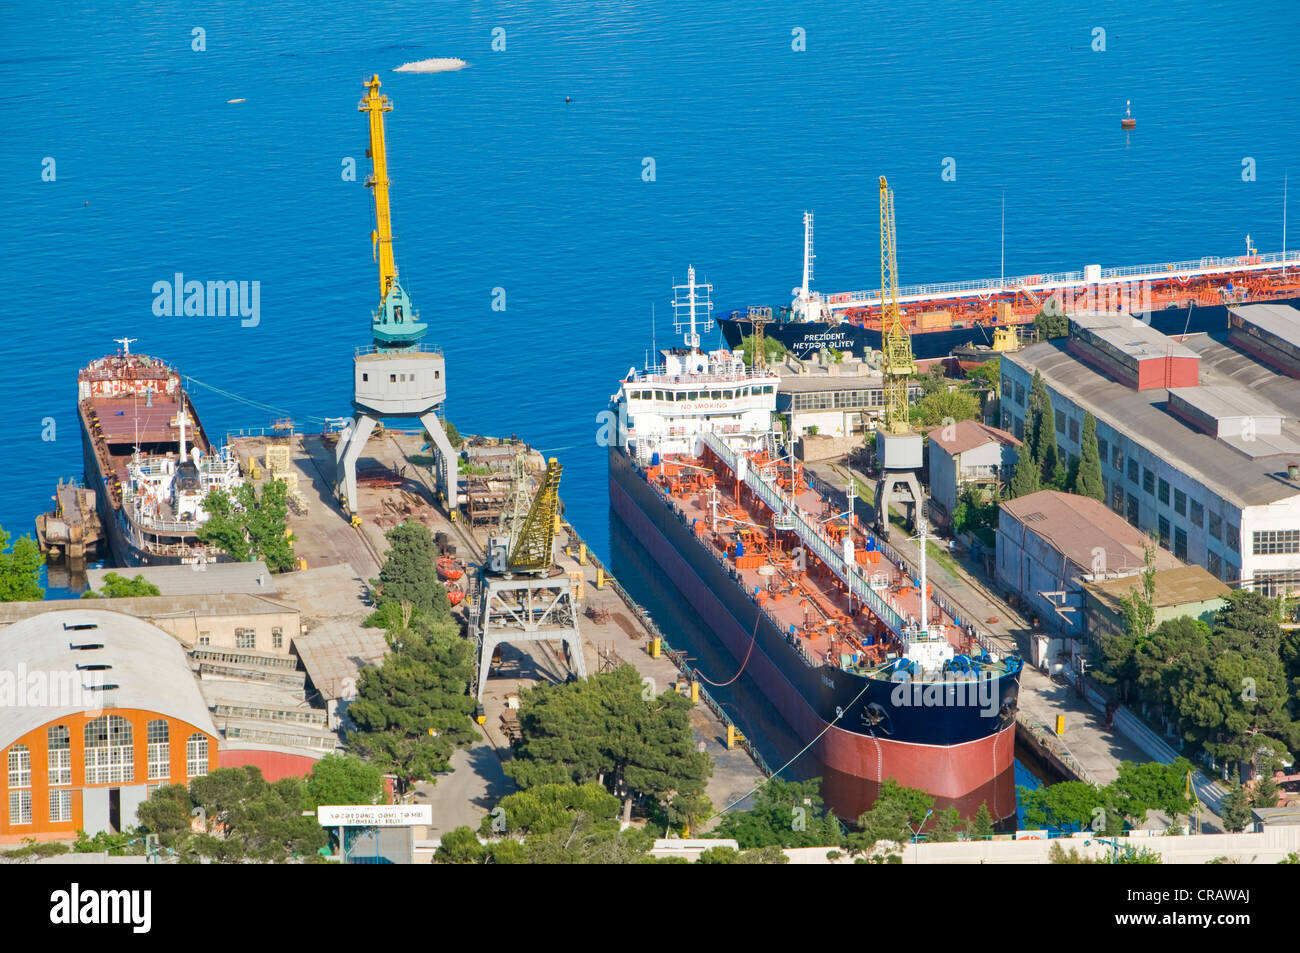 Baku Harbour with a container vessel, on the Caspian Sea, Azerbaijan, Caucasus region, Middle East - Stock Image